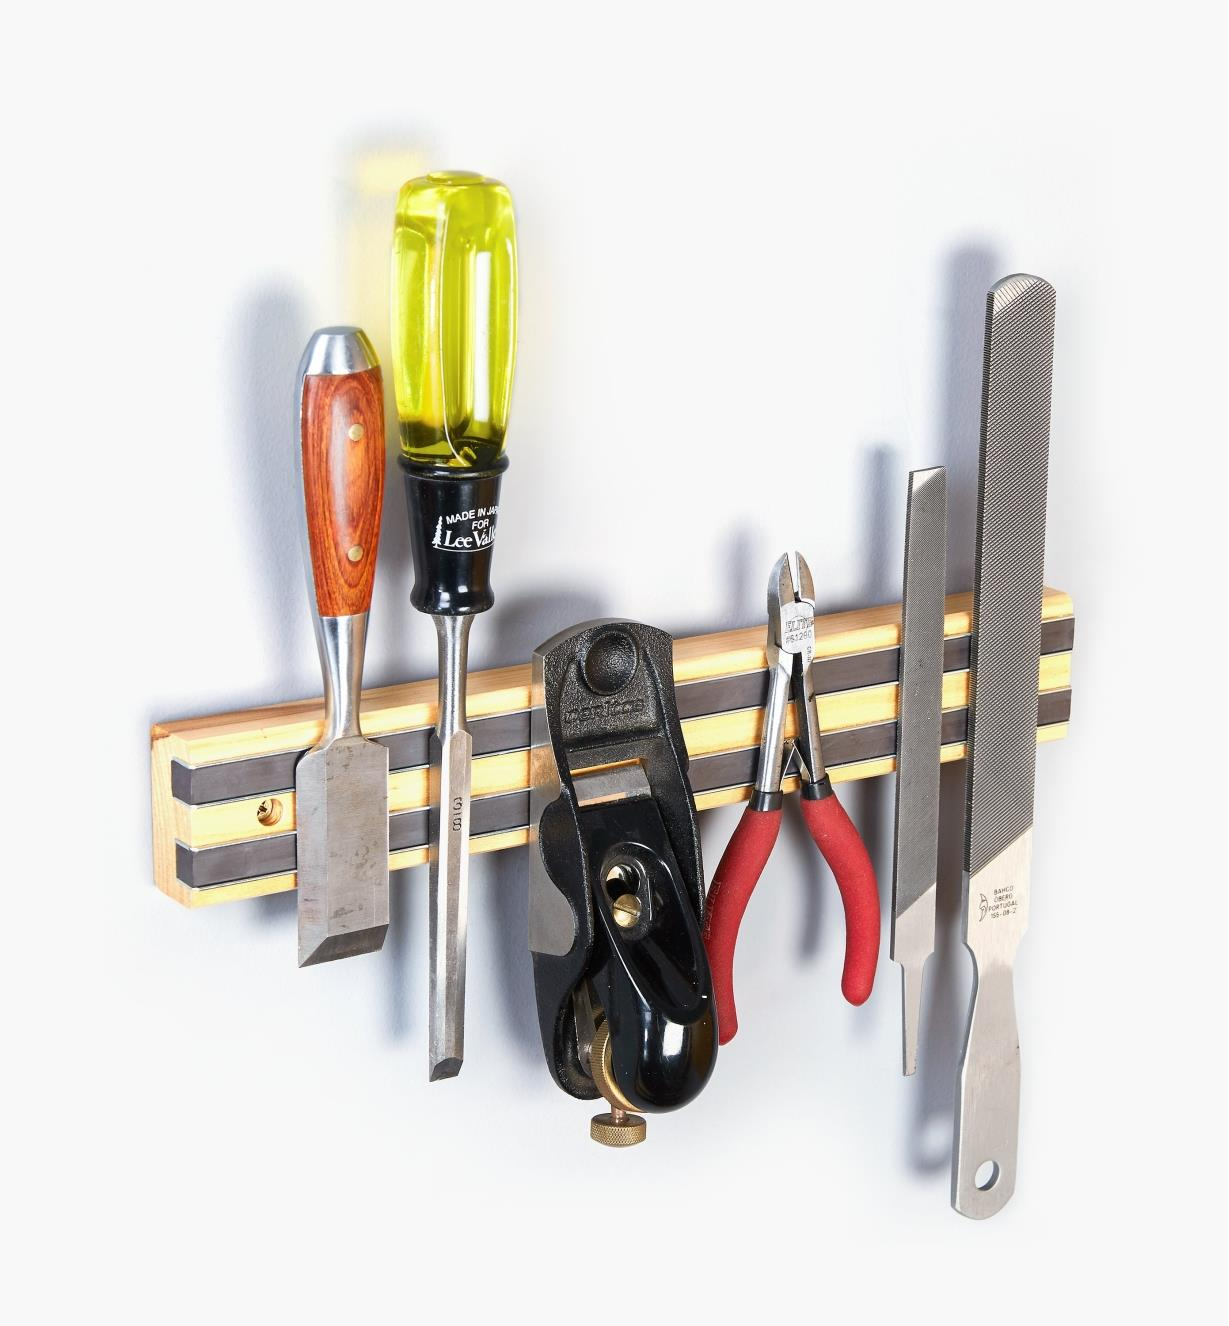 Various hand tools clinging to the Light-Duty Magnetic Tool Bar